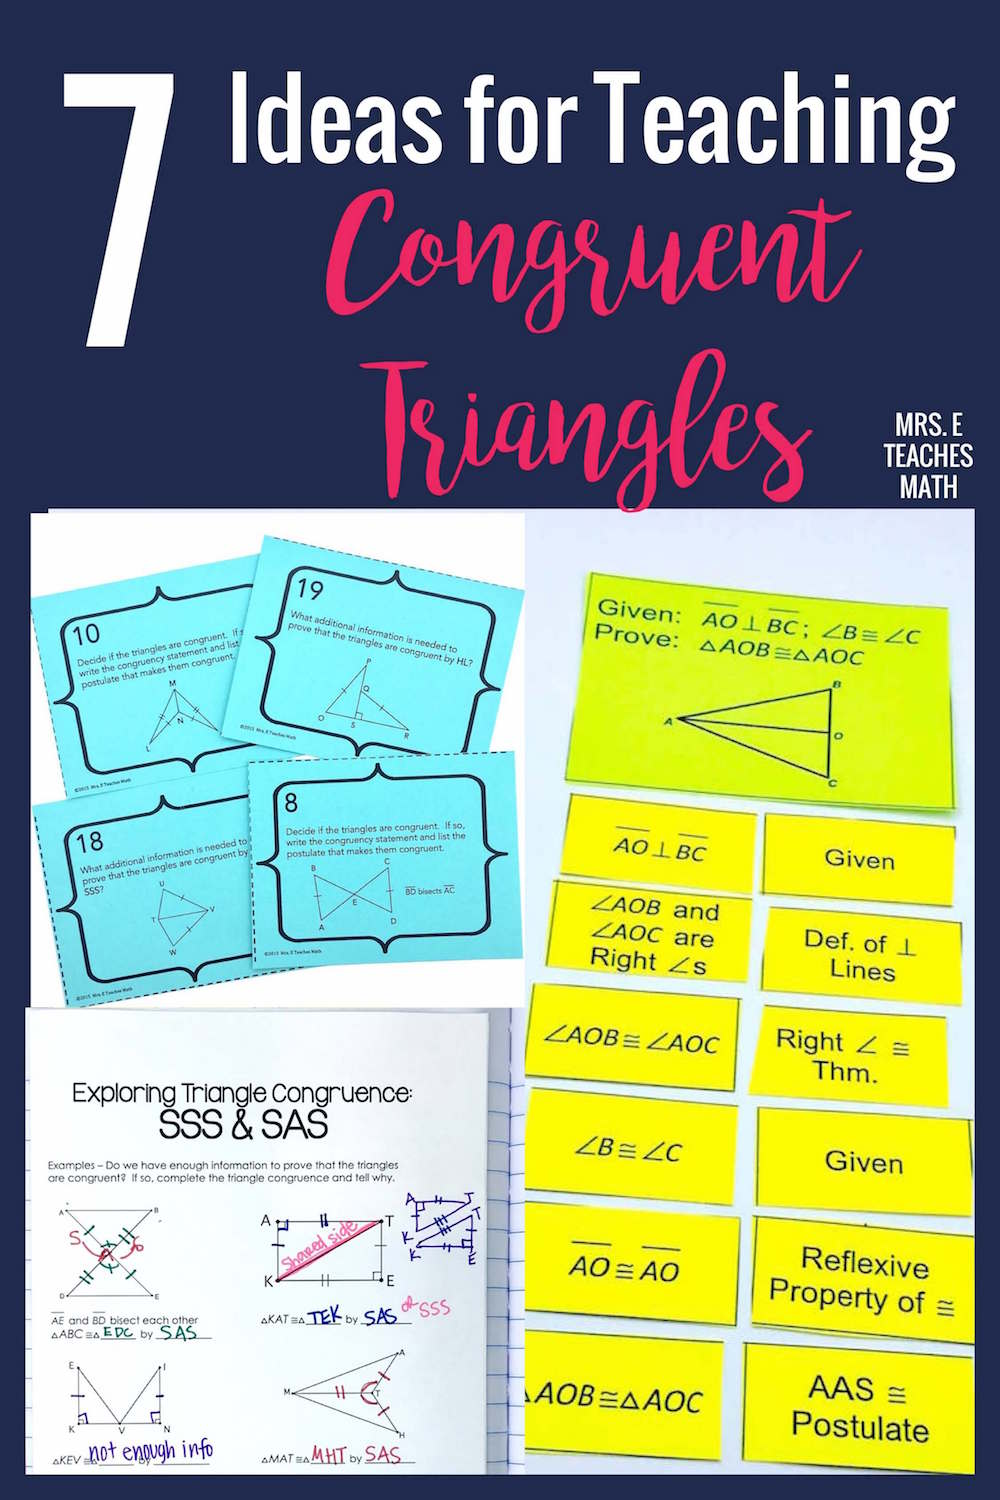 medium resolution of 7 Ideas for Teaching Congruent Triangles   Mrs. E Teaches Math